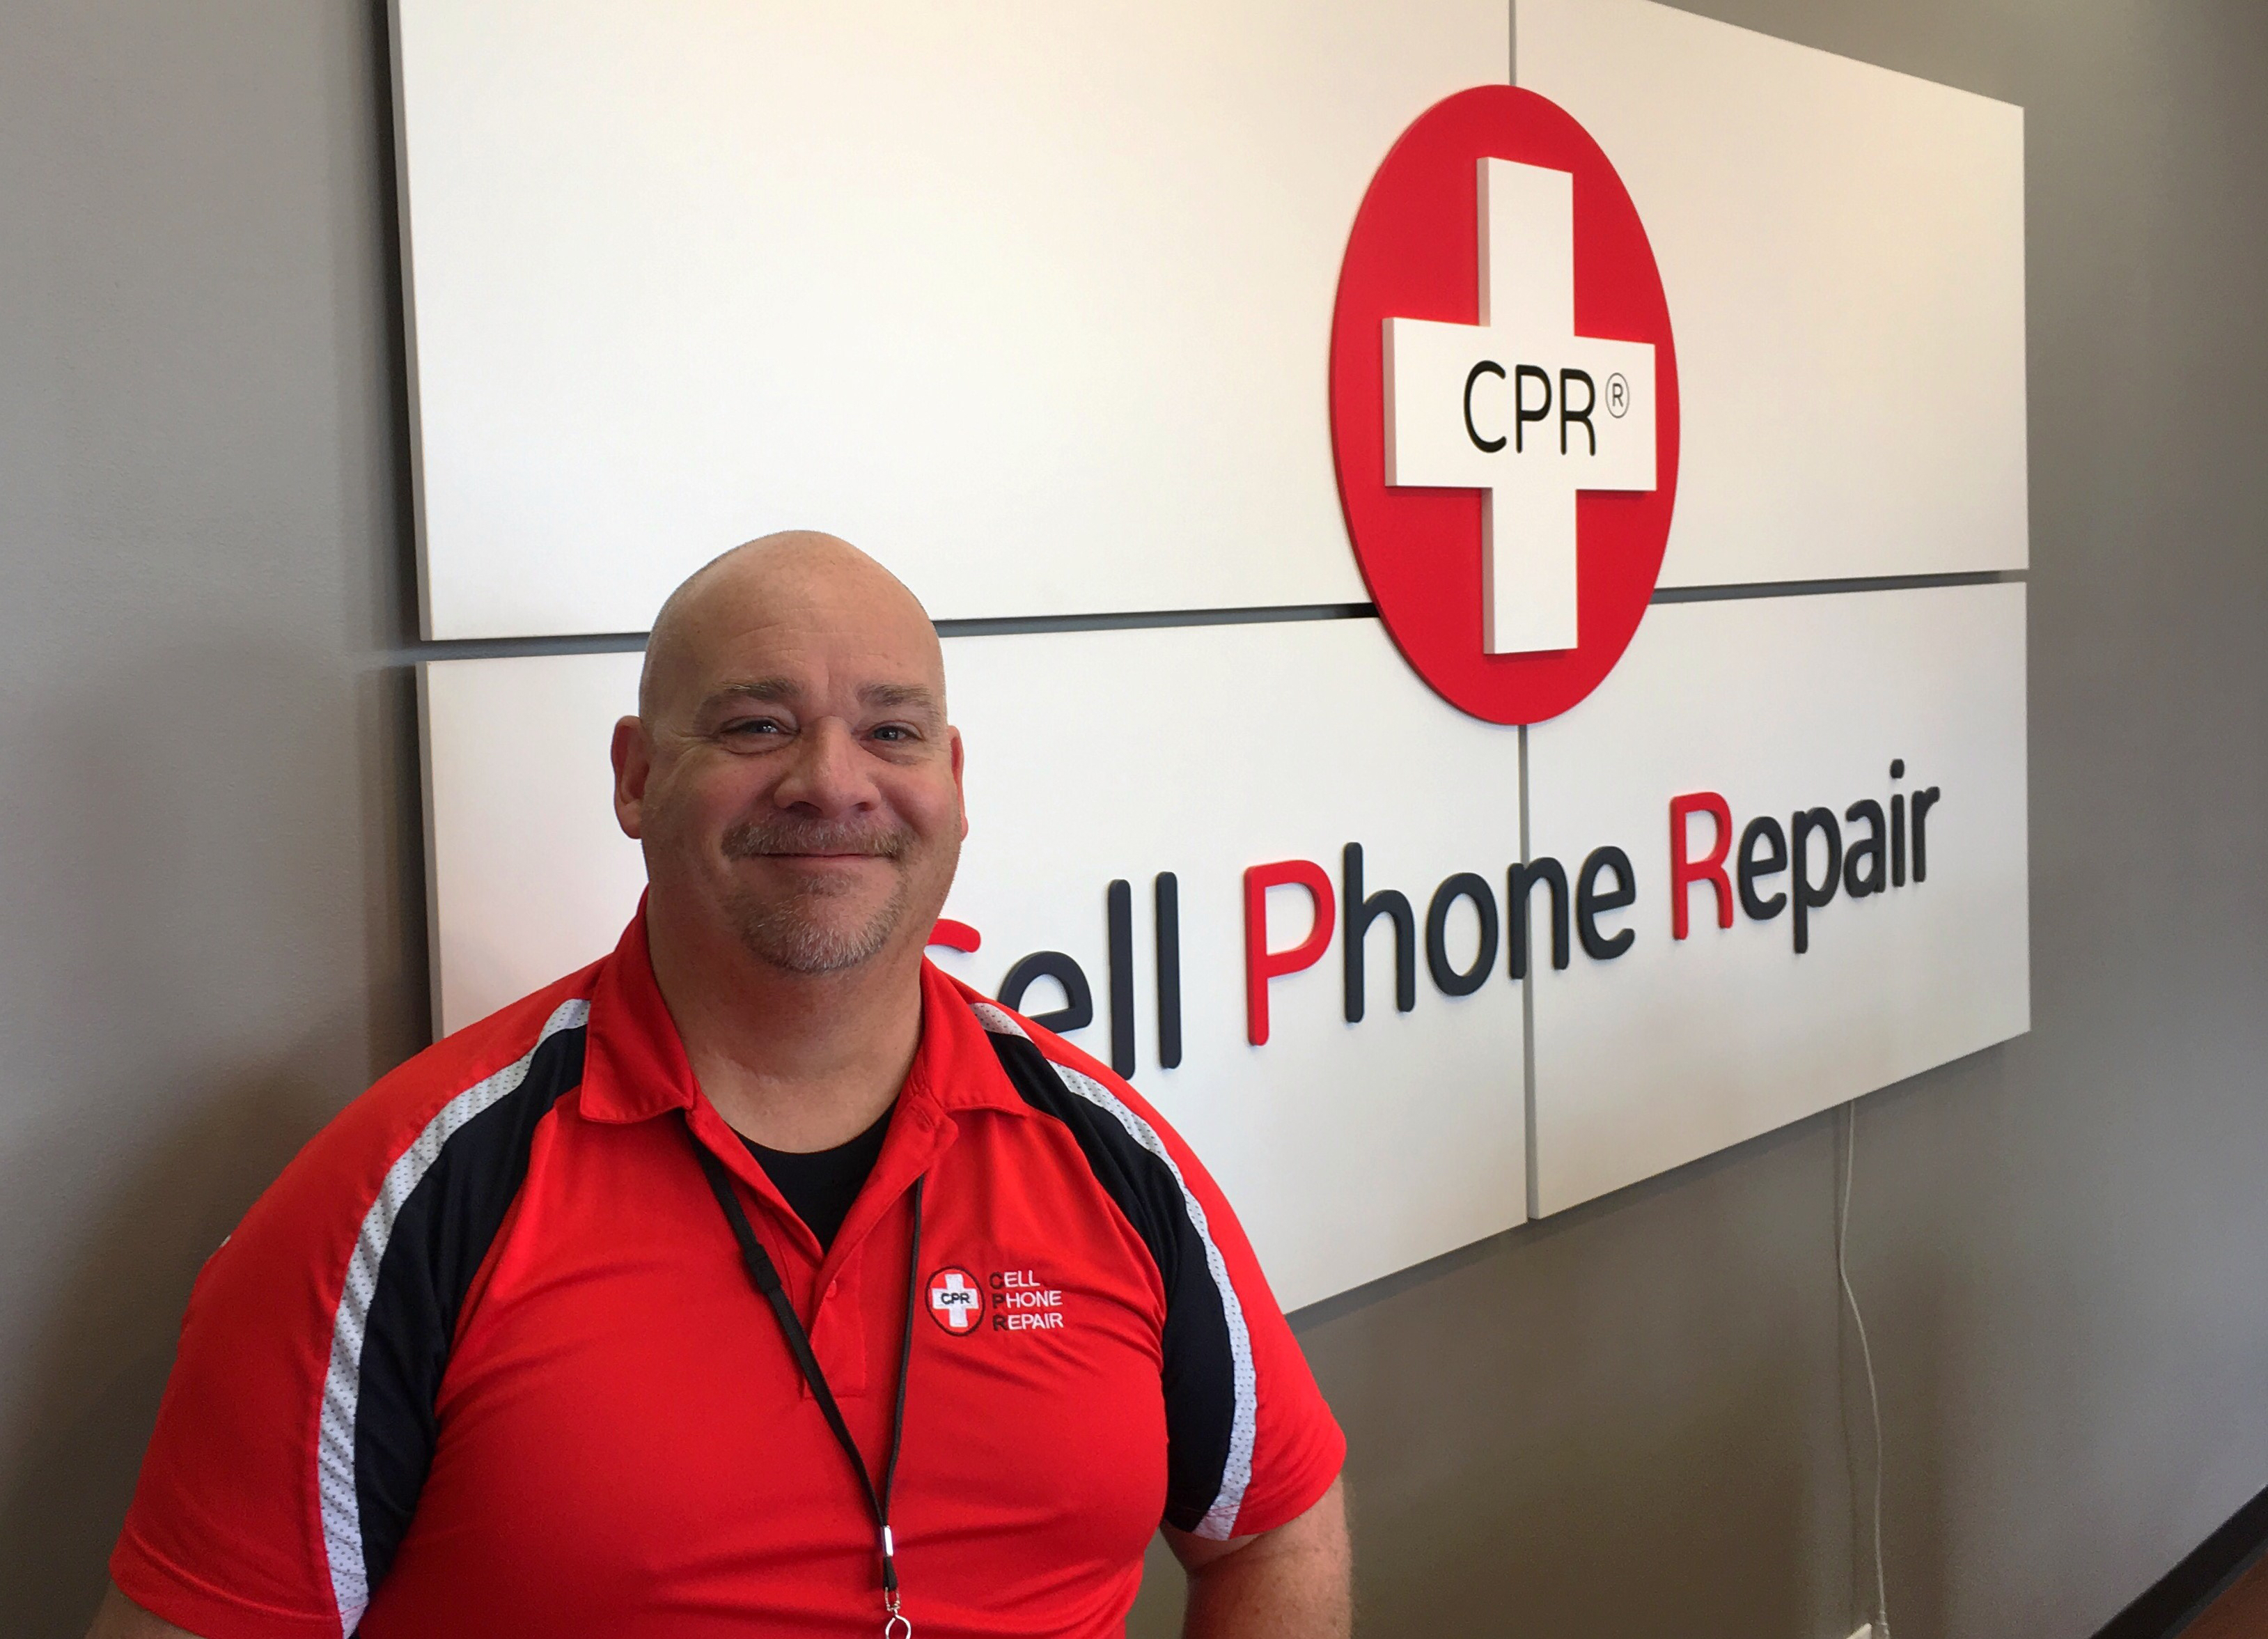 CPR Cell Phone Repair Anderson image 1